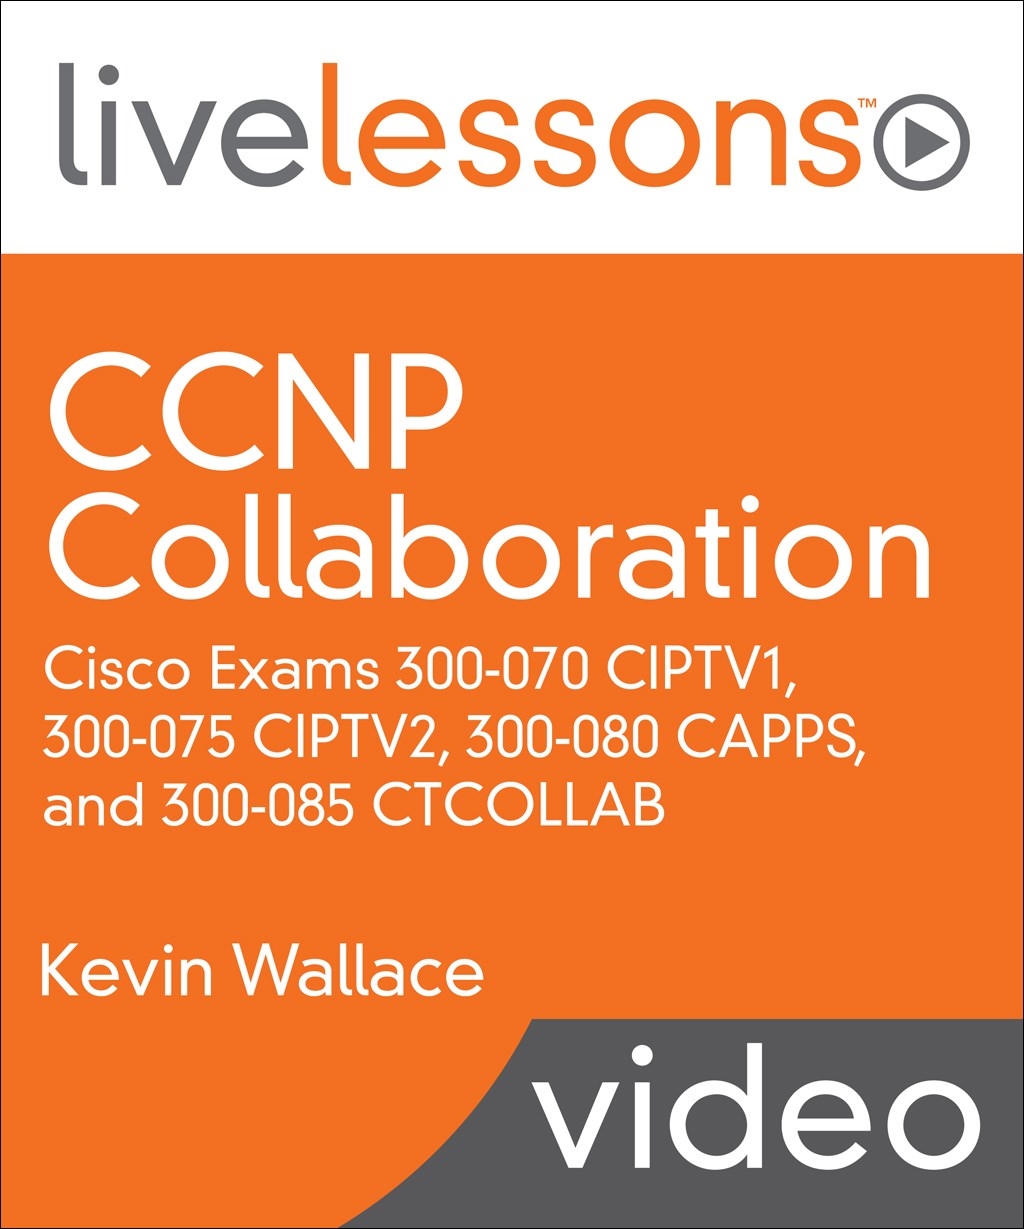 CCNP Collaboration LiveLessons: Cisco Exams 300-070 CIPTV1, 300-075 CIPTV2, 300-080 CAPPS, and 300-085 CTCOLLAB